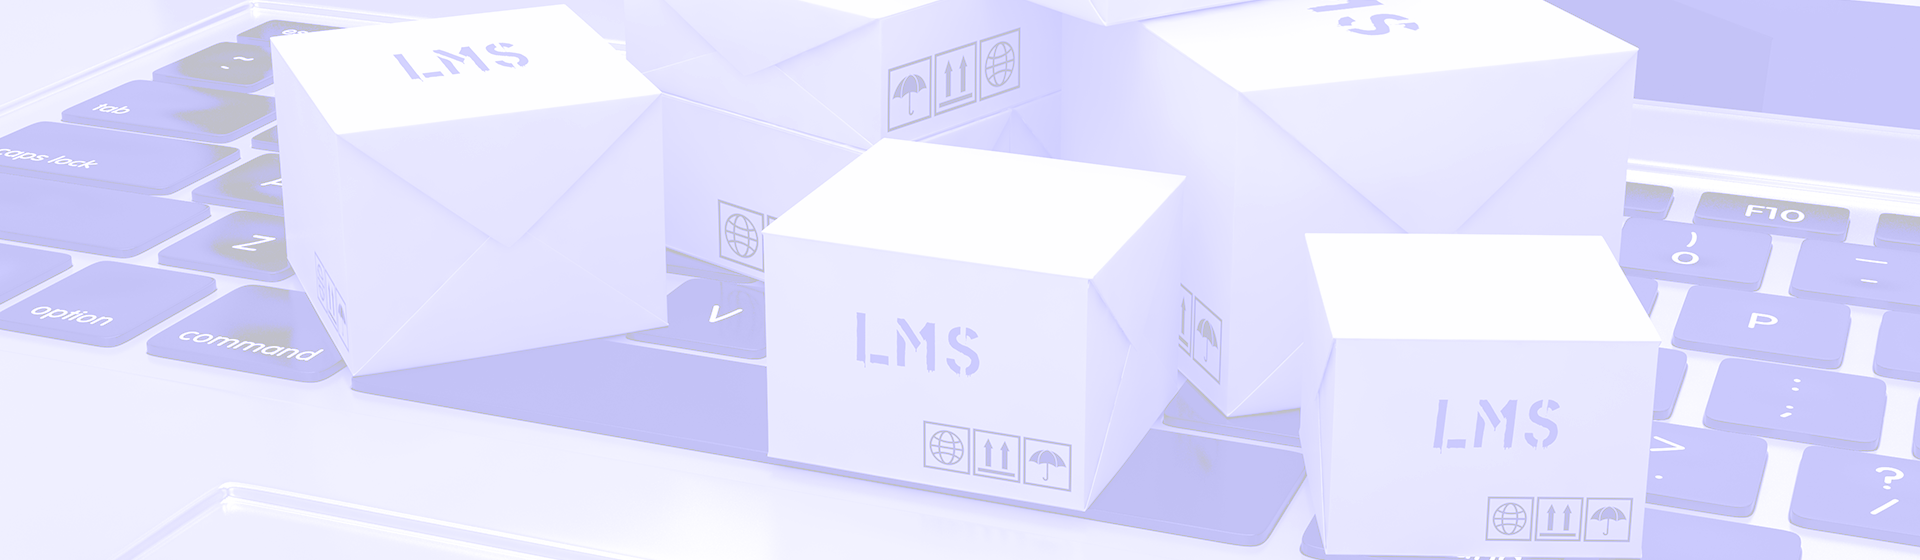 Simple Tips To Implement Your New LMS